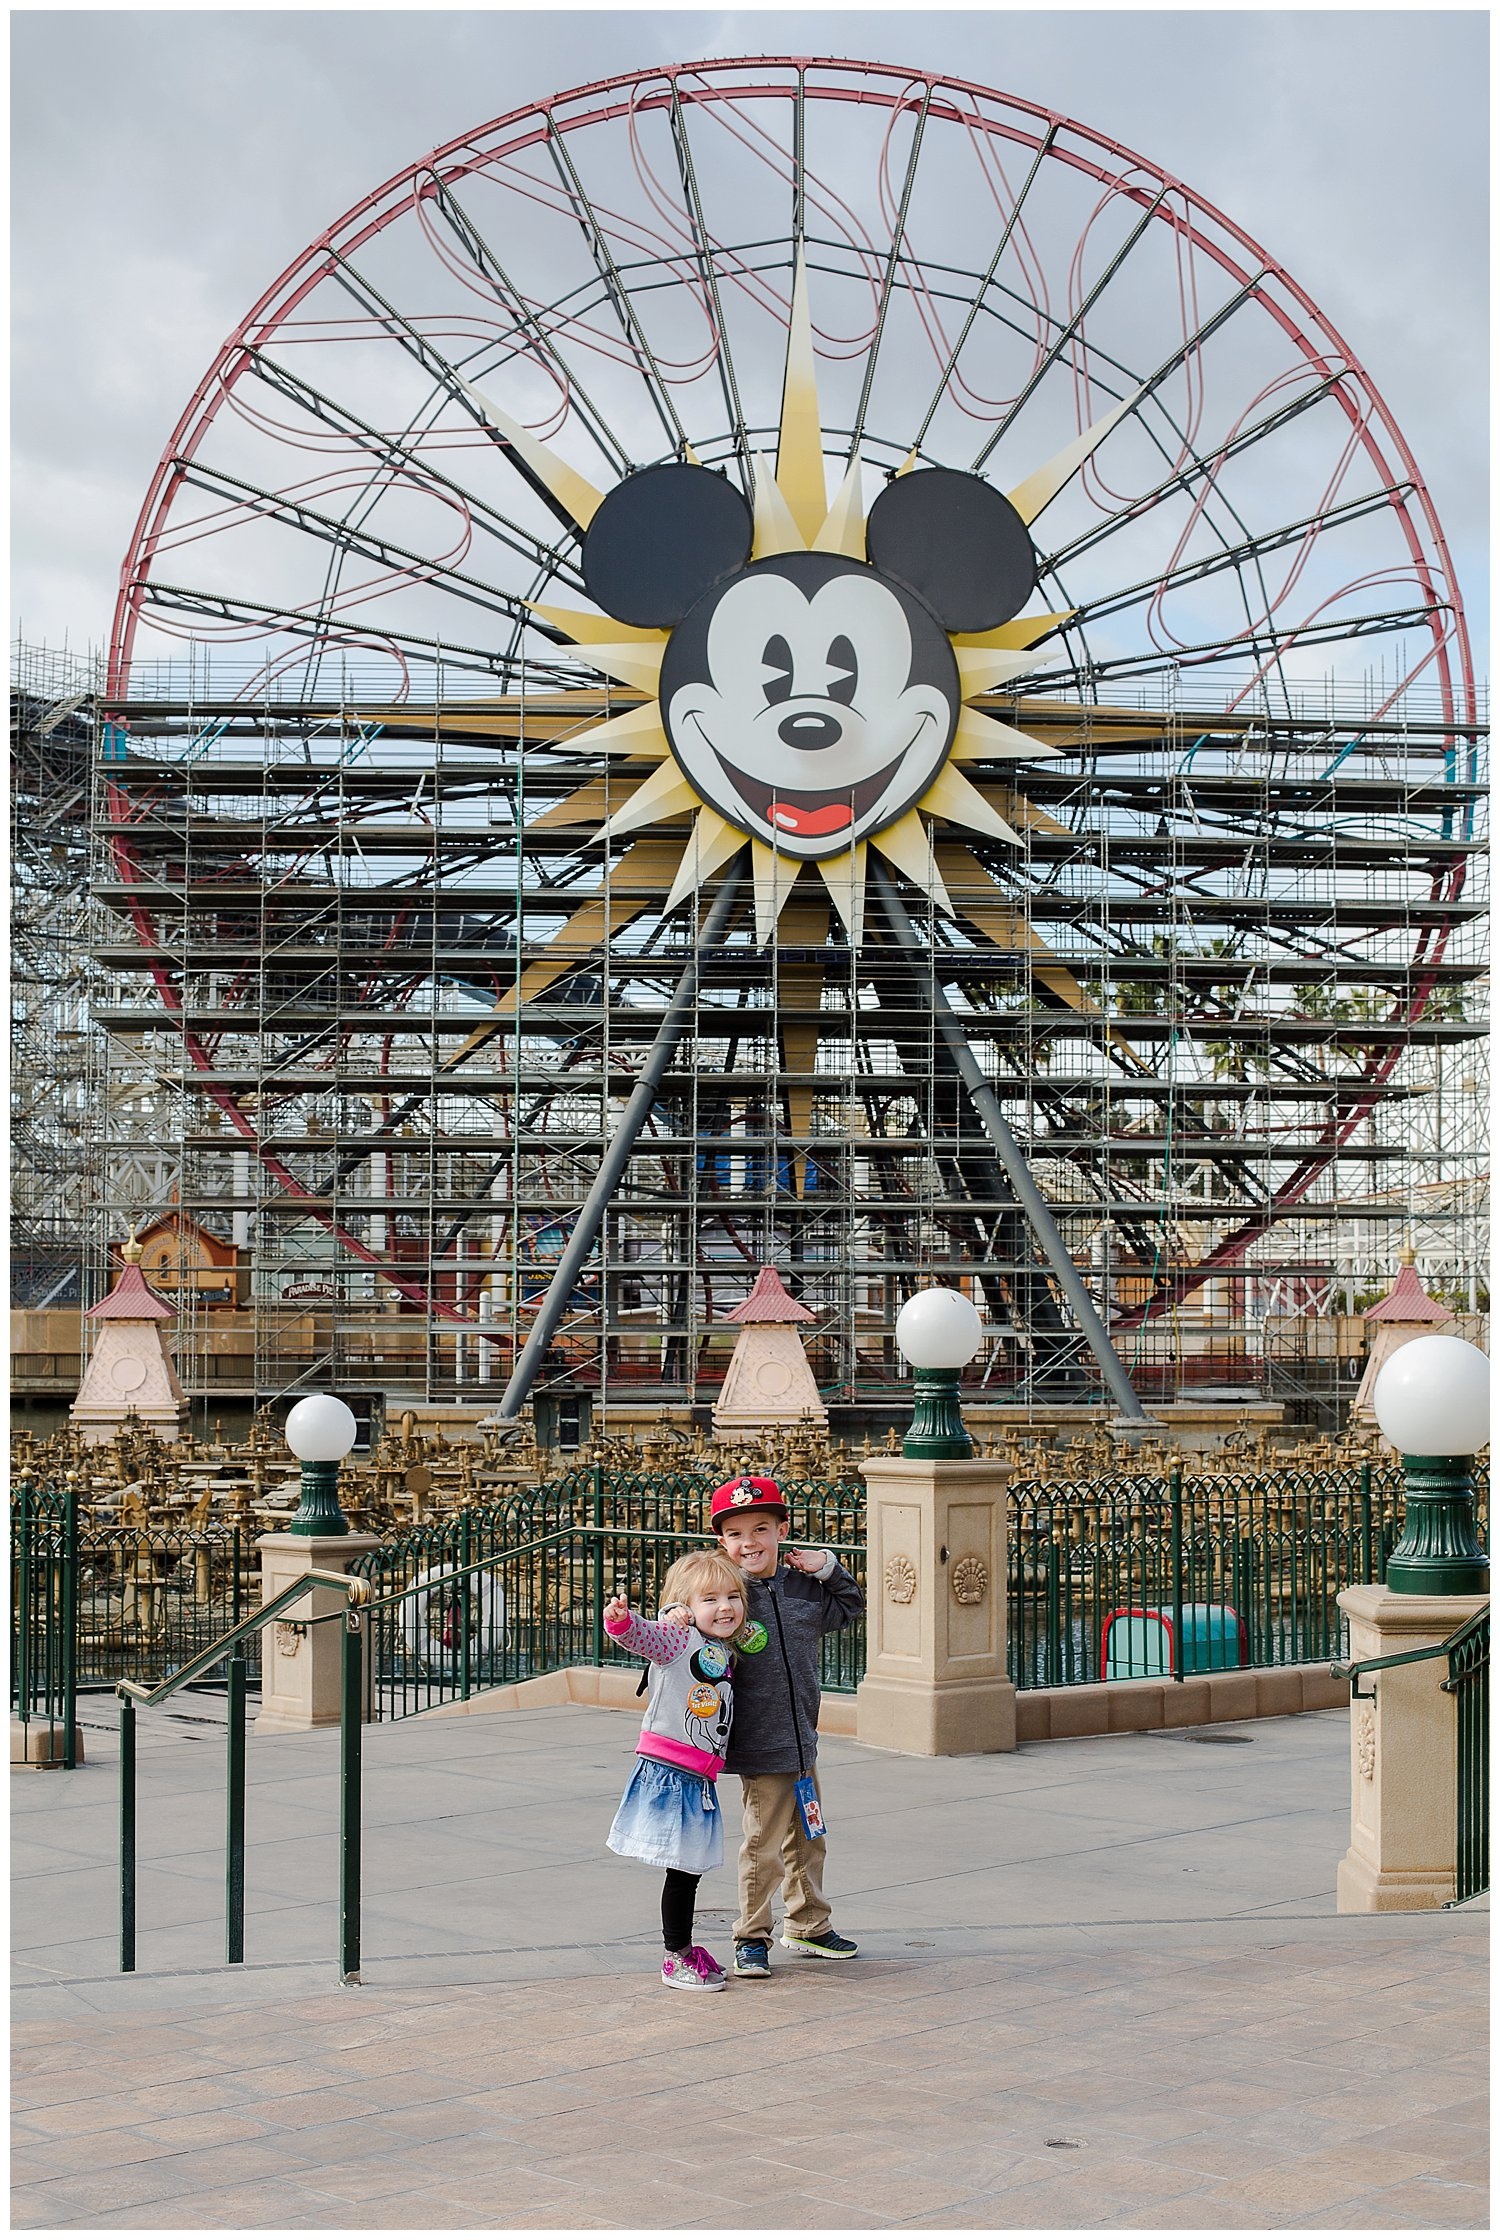 Checking out the California Adventure side of the park